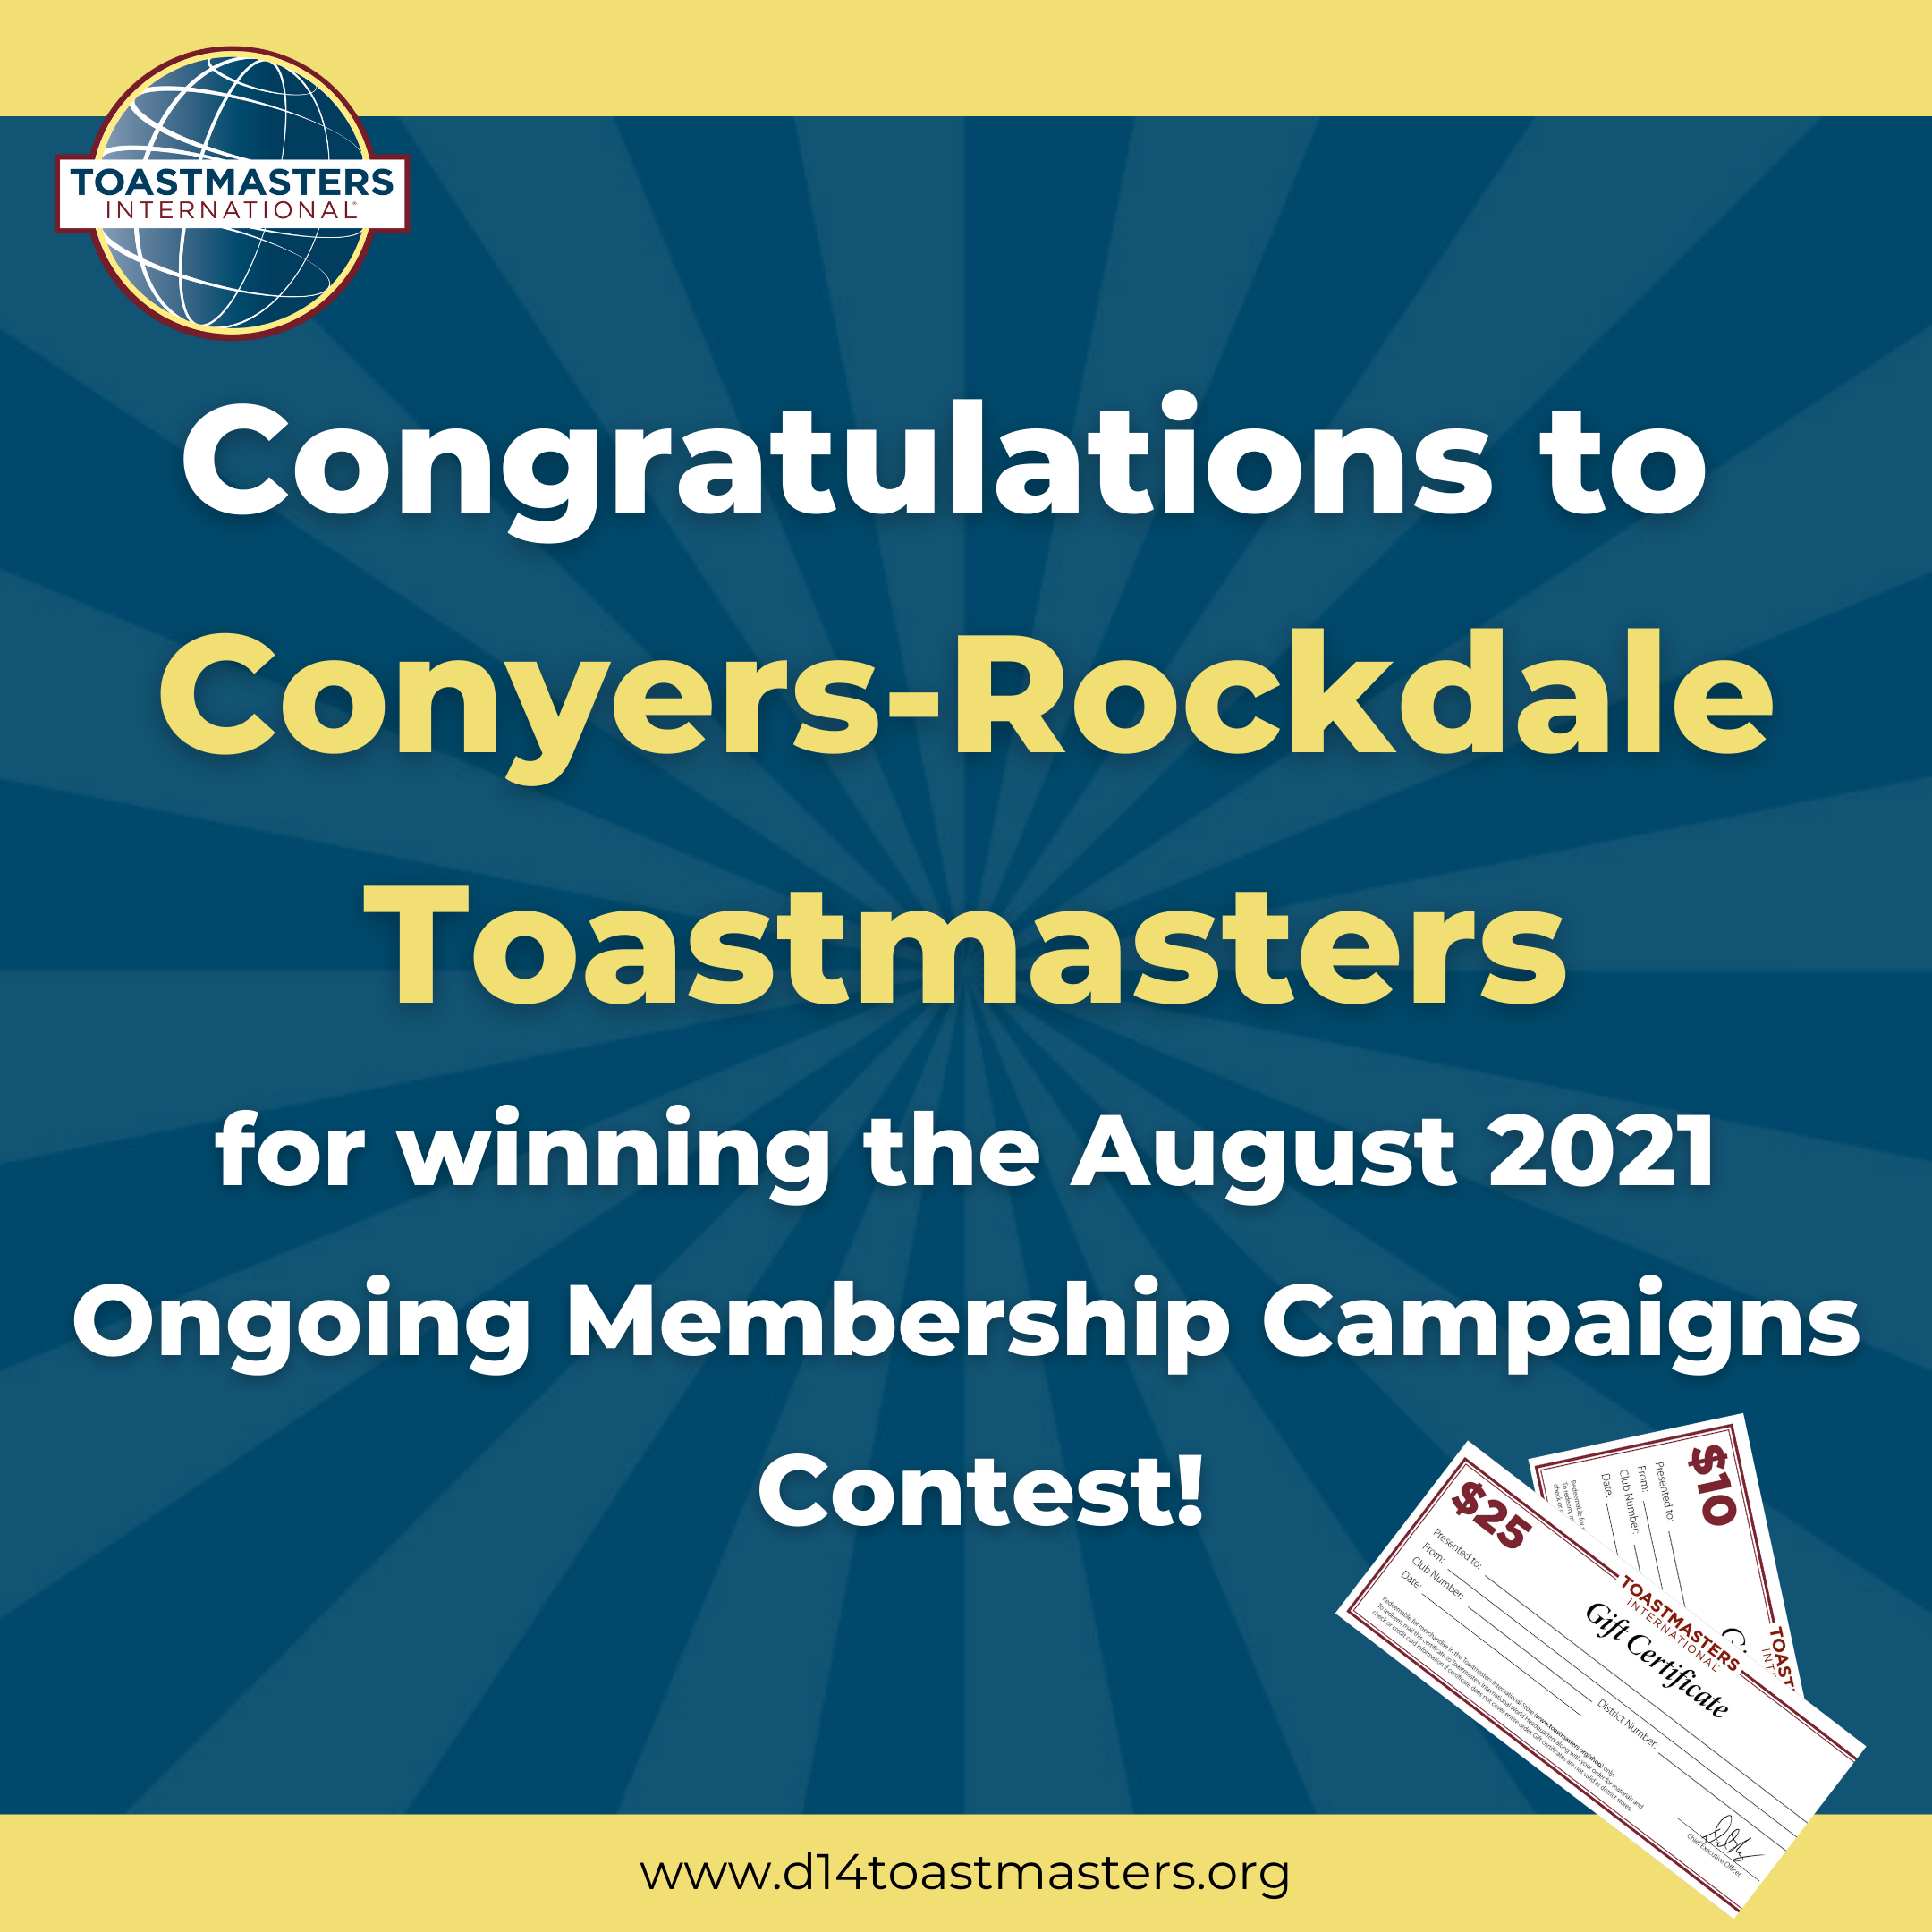 Congratulations to Conyers-Rockdale Toastmasters for winning the August 2021 Ongoing Membership Campaigns Contest!